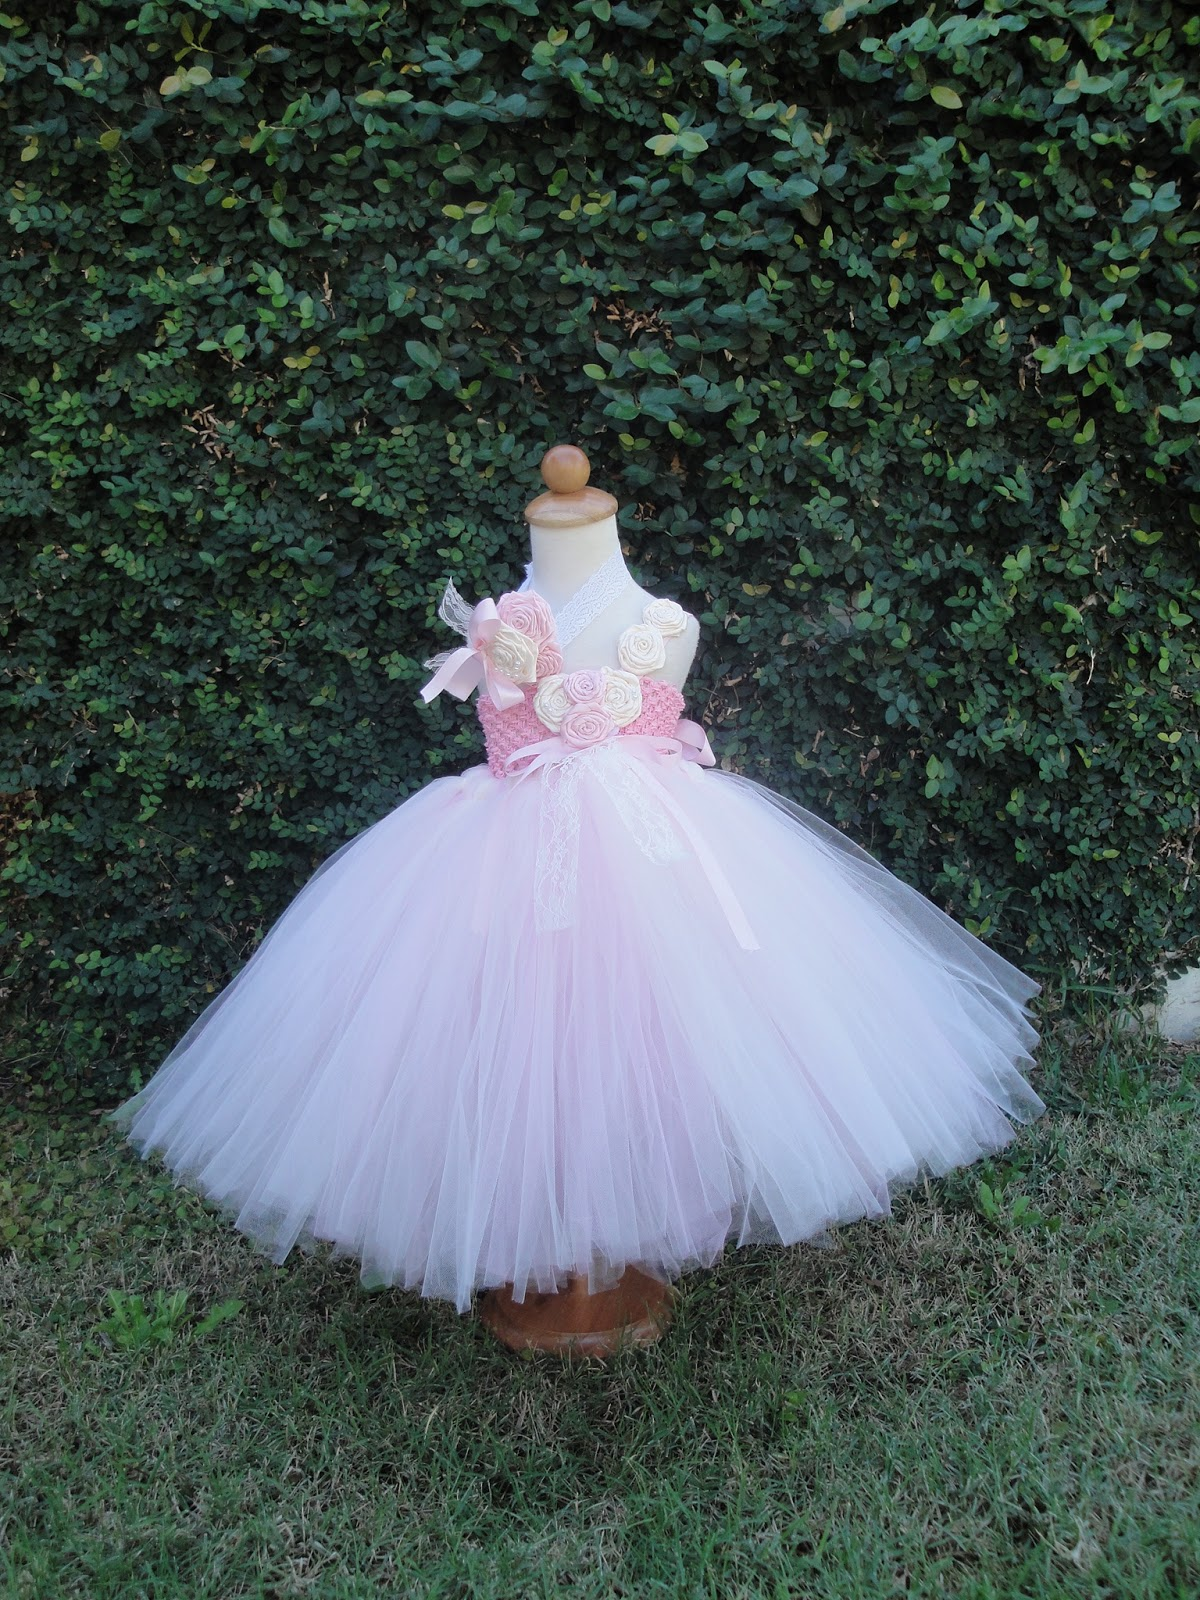 VINTAGE BABY WEDDING DRESS